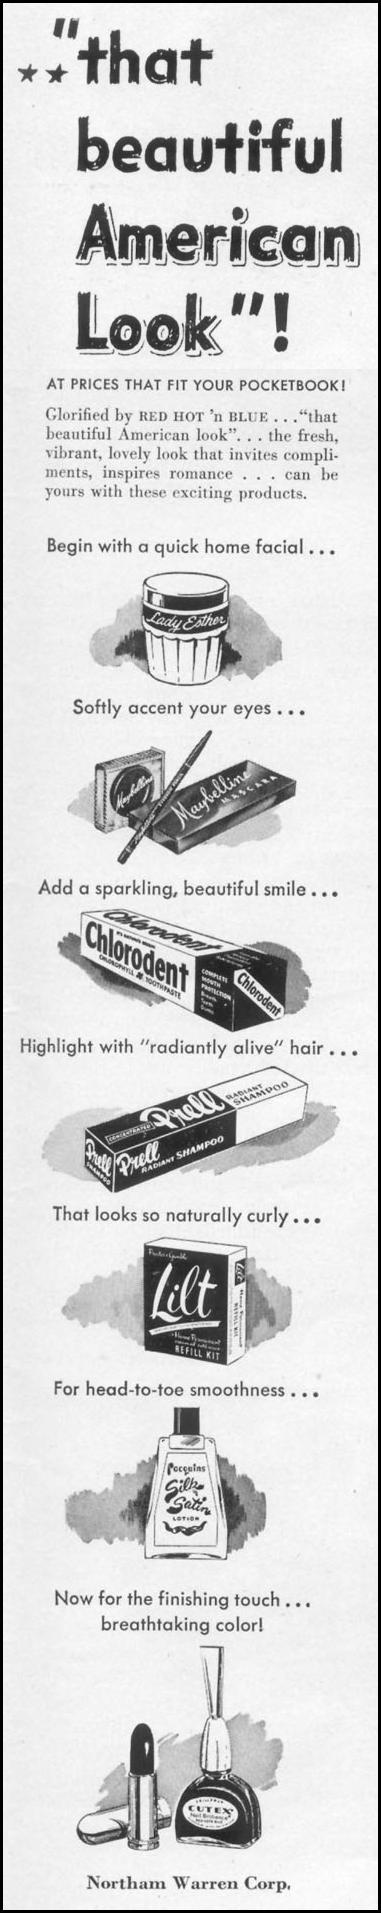 BEAUTY PRODUCTS LIFE 10/13/1952 p. 155